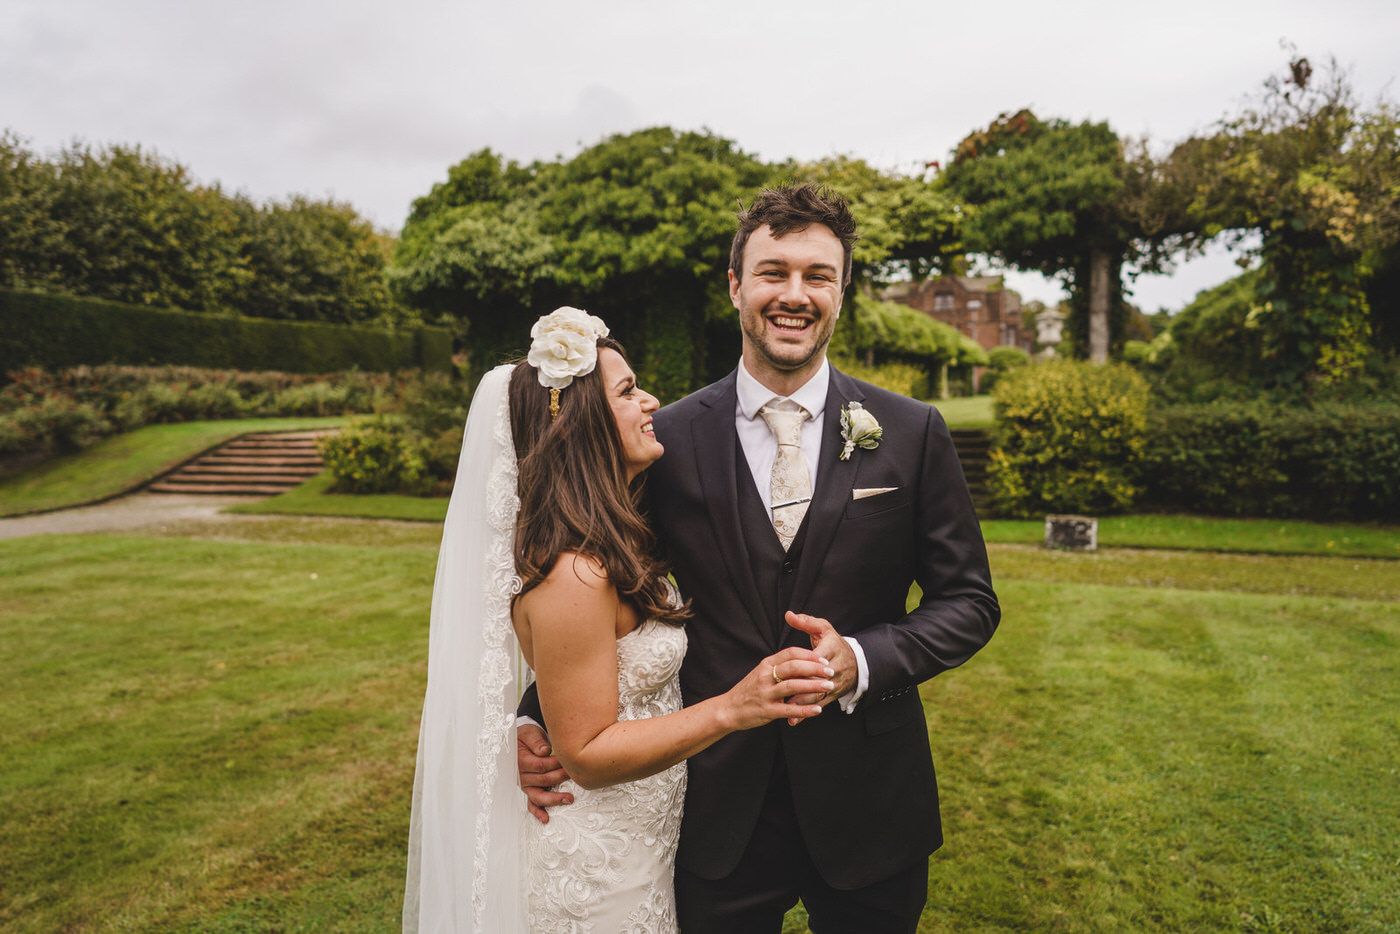 the groom laughs and smile broadly as his beautiful bride looks proudly on